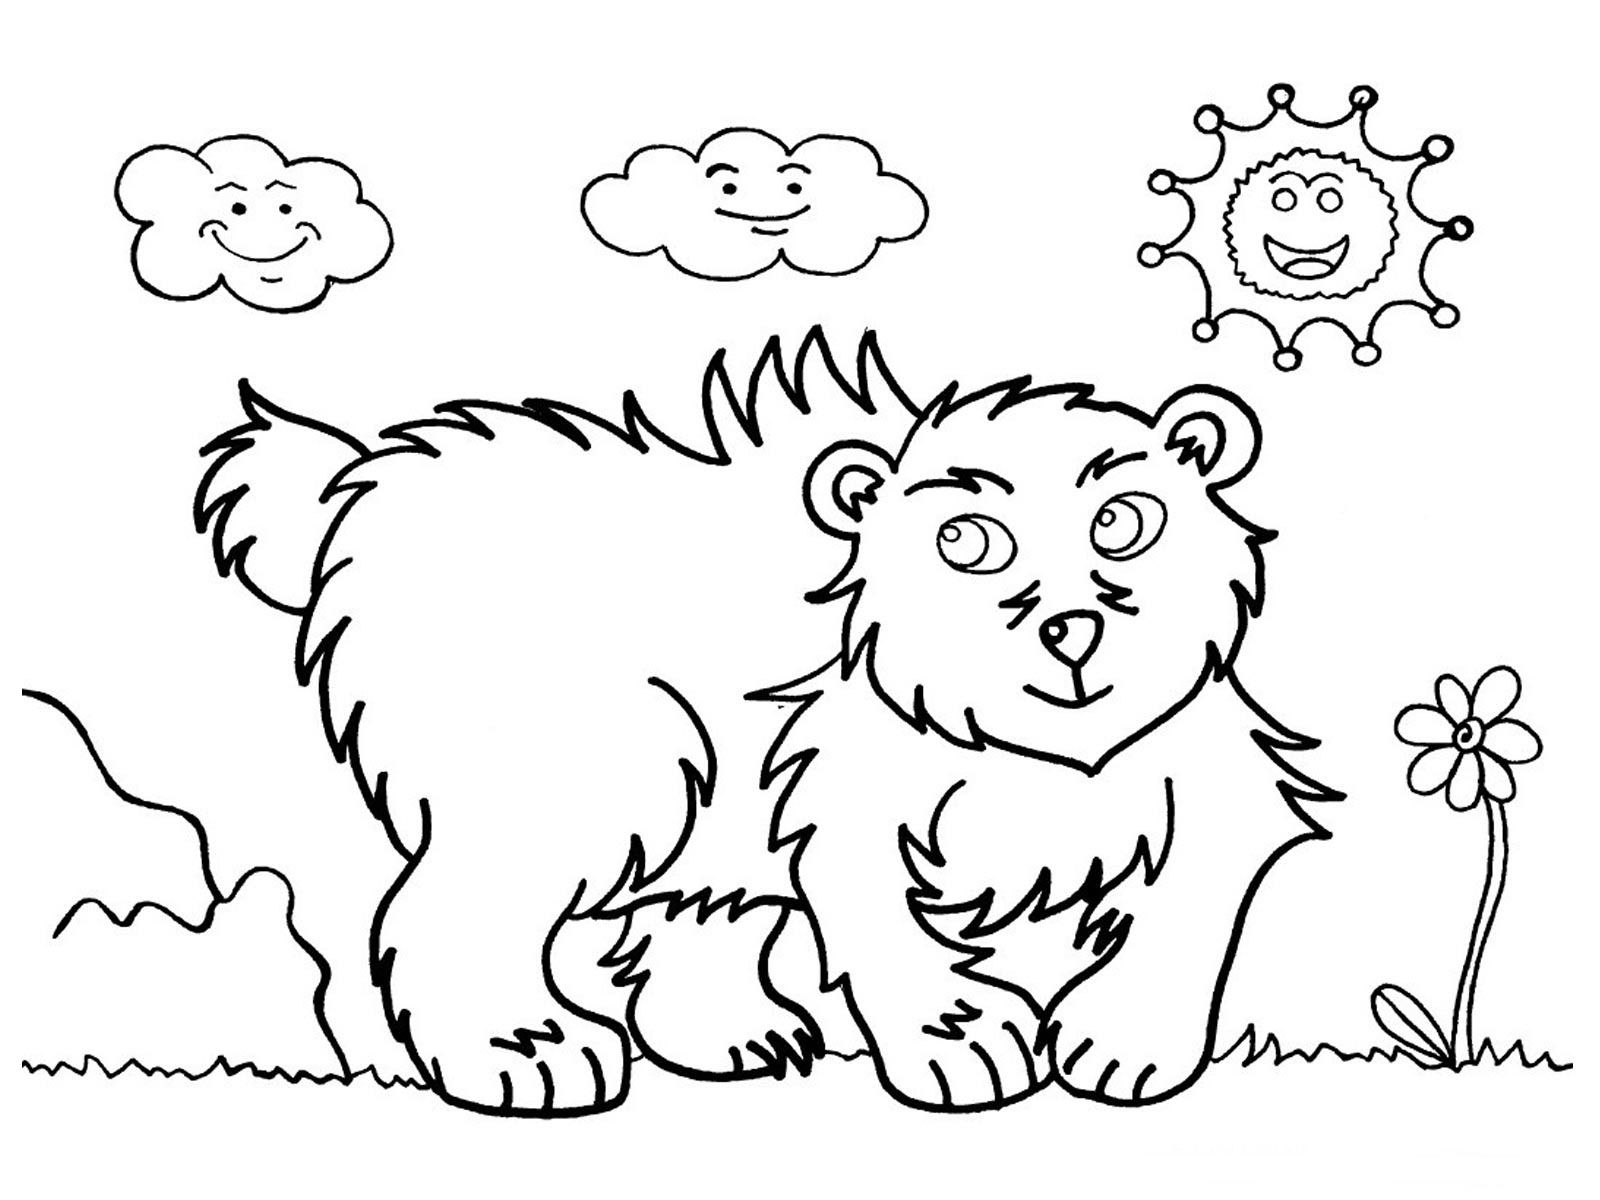 Bear Printable Kids Coloring Pages | Coloring Pages | Pinterest | Bears